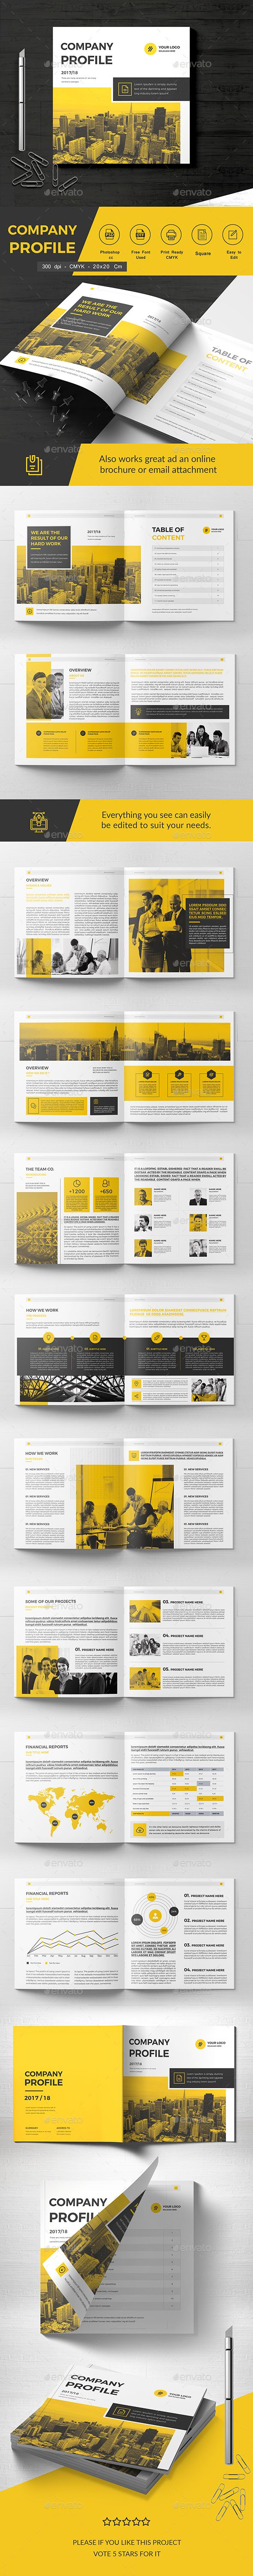 Square Company Brochure Template PSD - 22 Pages